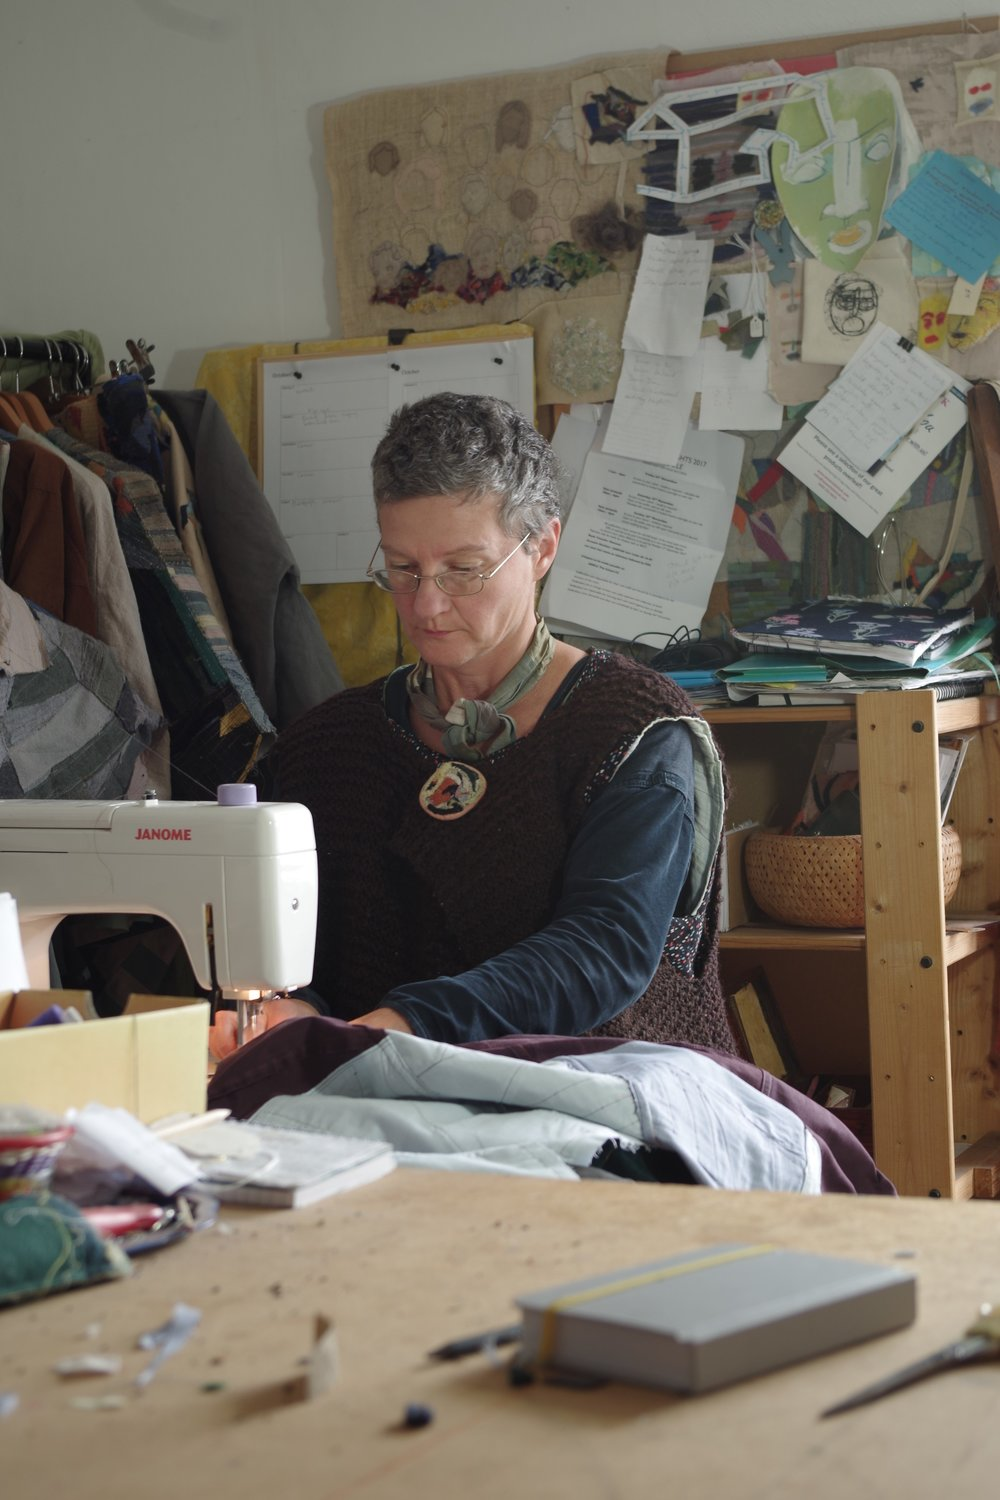 Gemma Textiles - Gemma Textiles designs and creates thoughtful, striking and inspiring clothes for the independent woman. All Gemma Textiles clothes are hand-made by Gemma Buxton in her workshop on the south coast of the UK.All of my designs have evolved out of garments I made originally for myself when I couldn't find clothes on the high street or in vintage stores that defined how I felt about myself or worked properly for my lifestyle.I've always been interested in how fashion creates shapes for people to inhabit. This fascination in form and the body led me to study sculpture at college, and has combined with a lifelong love of the potential for colour and texture in fabric, to help me create this collection of signature garments.To be happy within ourselves and our environment, I think it's important live as carefully and sustainably as possible. Gemma Textiles clothes focus on using reclaimed textiles, either from post-consumer waste or dead stock from the fashion industry. I'm also investigating how to best integrate carefully sourced, home-dyed organic linens.The recognisable colour-block style of Gemma Textiles clothing means that every garment is truly one of a kind.